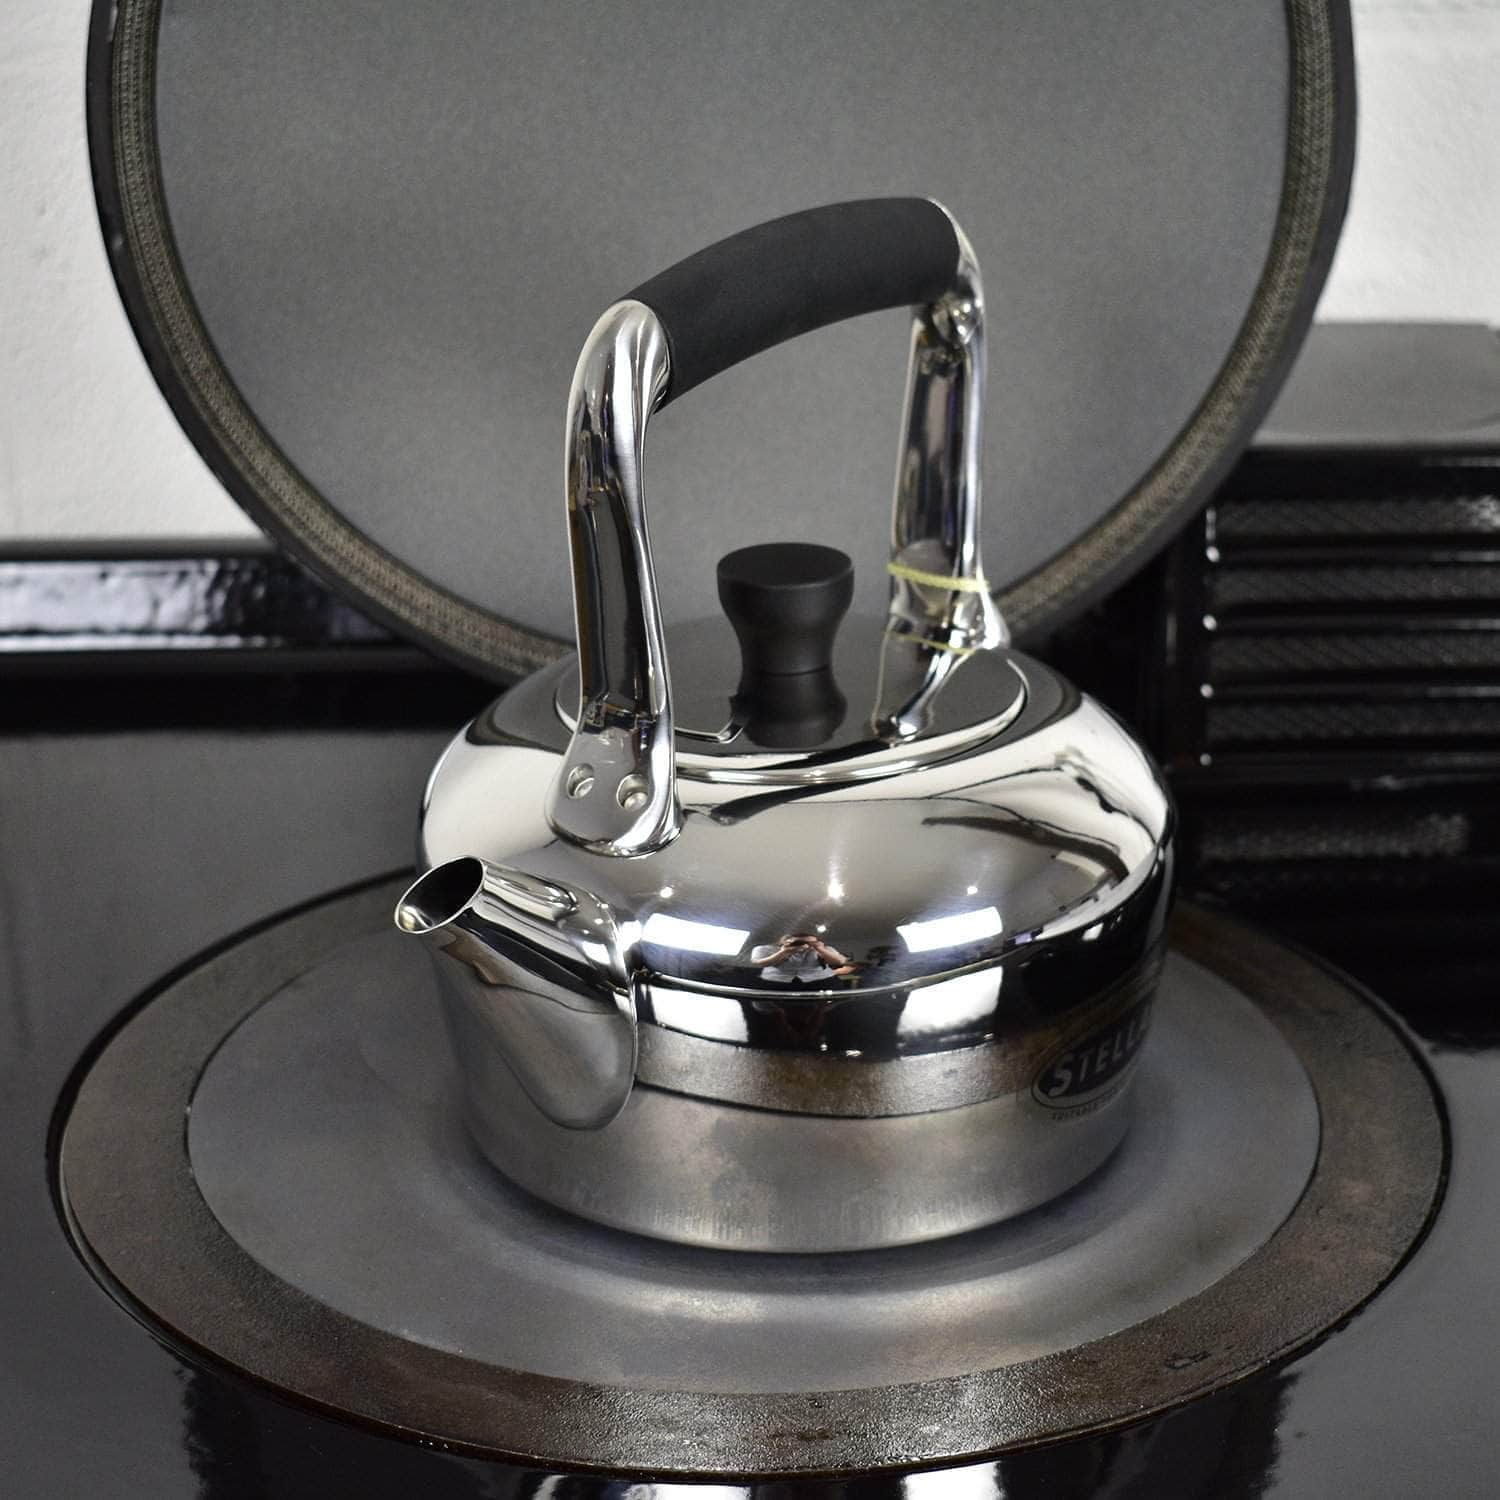 *Not quite perfect* Classic stainless steel kettle 1.7 Litres